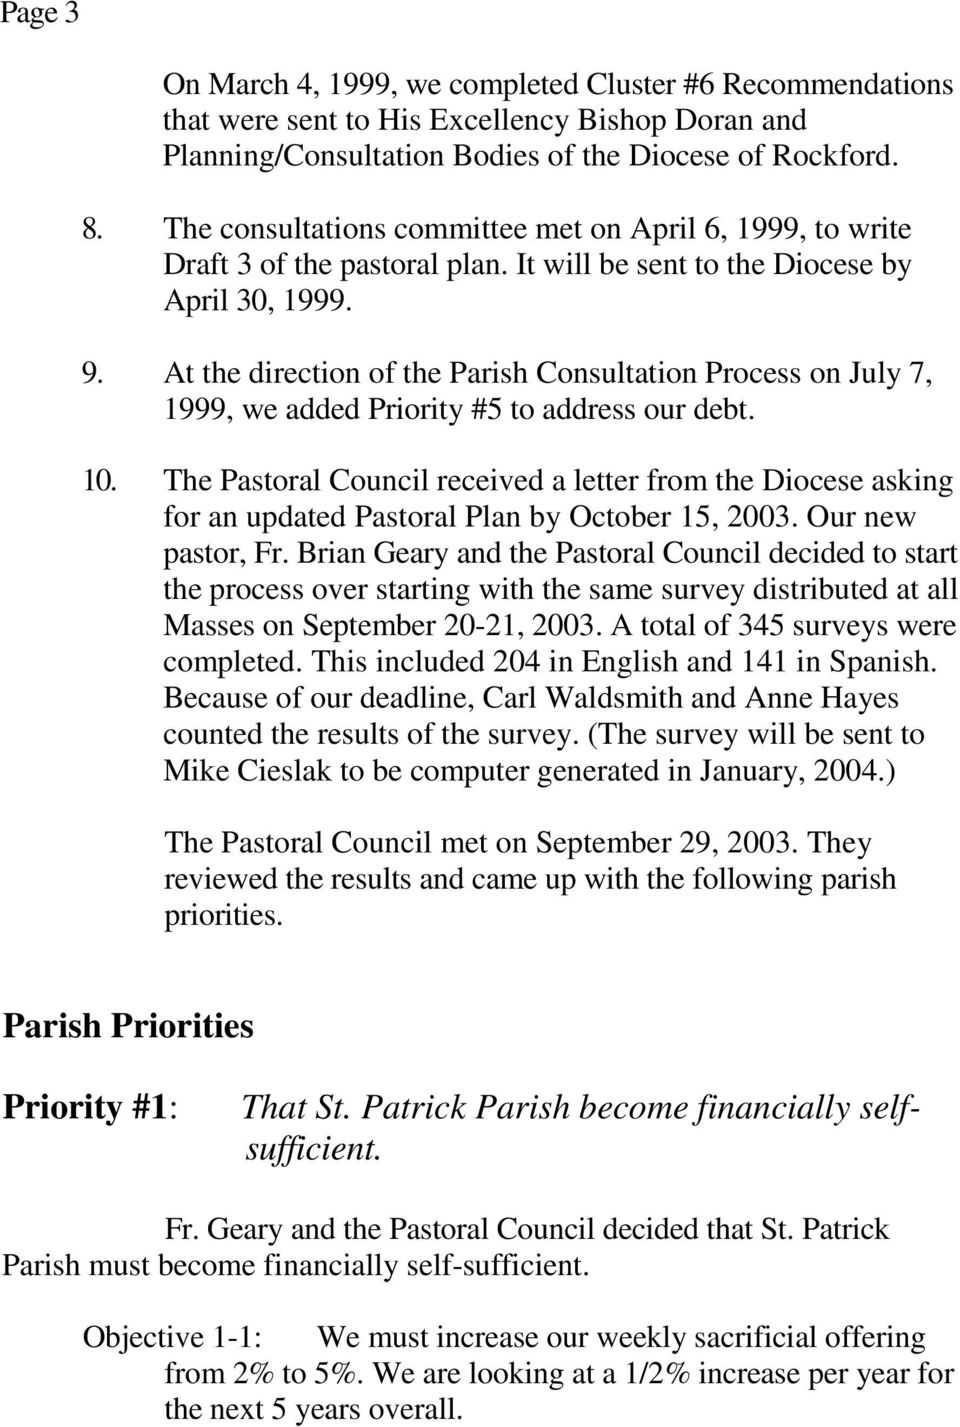 At the direction of the Parish Consultation Process on July 7, 1999, we added Priority #5 to address our debt. 10.